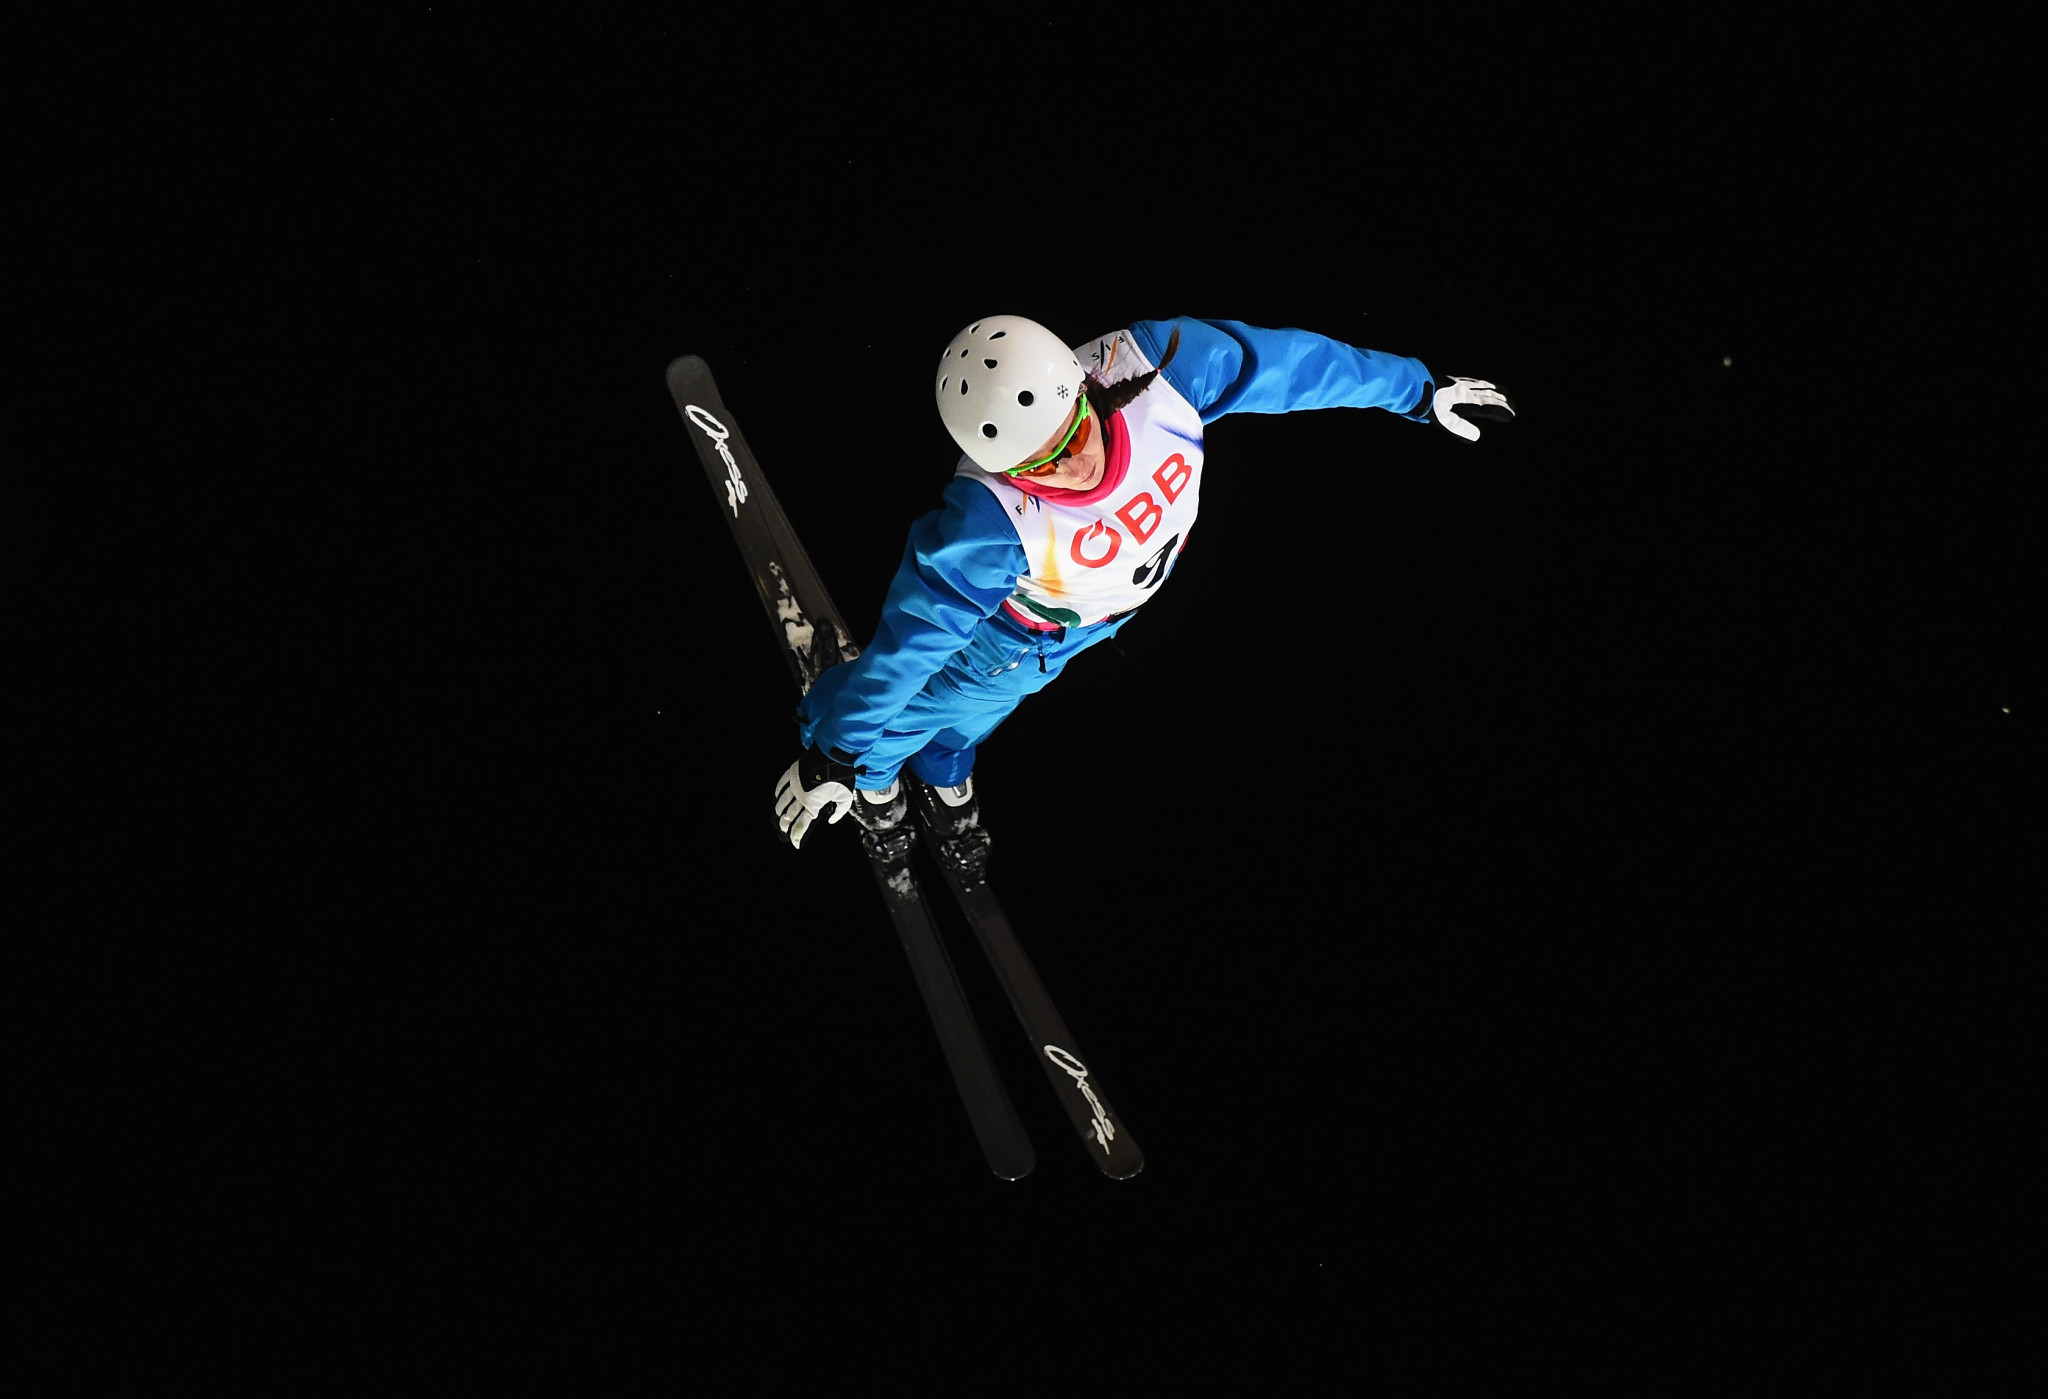 Hanna Huskova put in a strong performance to take gold in the FIS Freestyle Aerials World Cup event in Secret Garden ©Getty Images